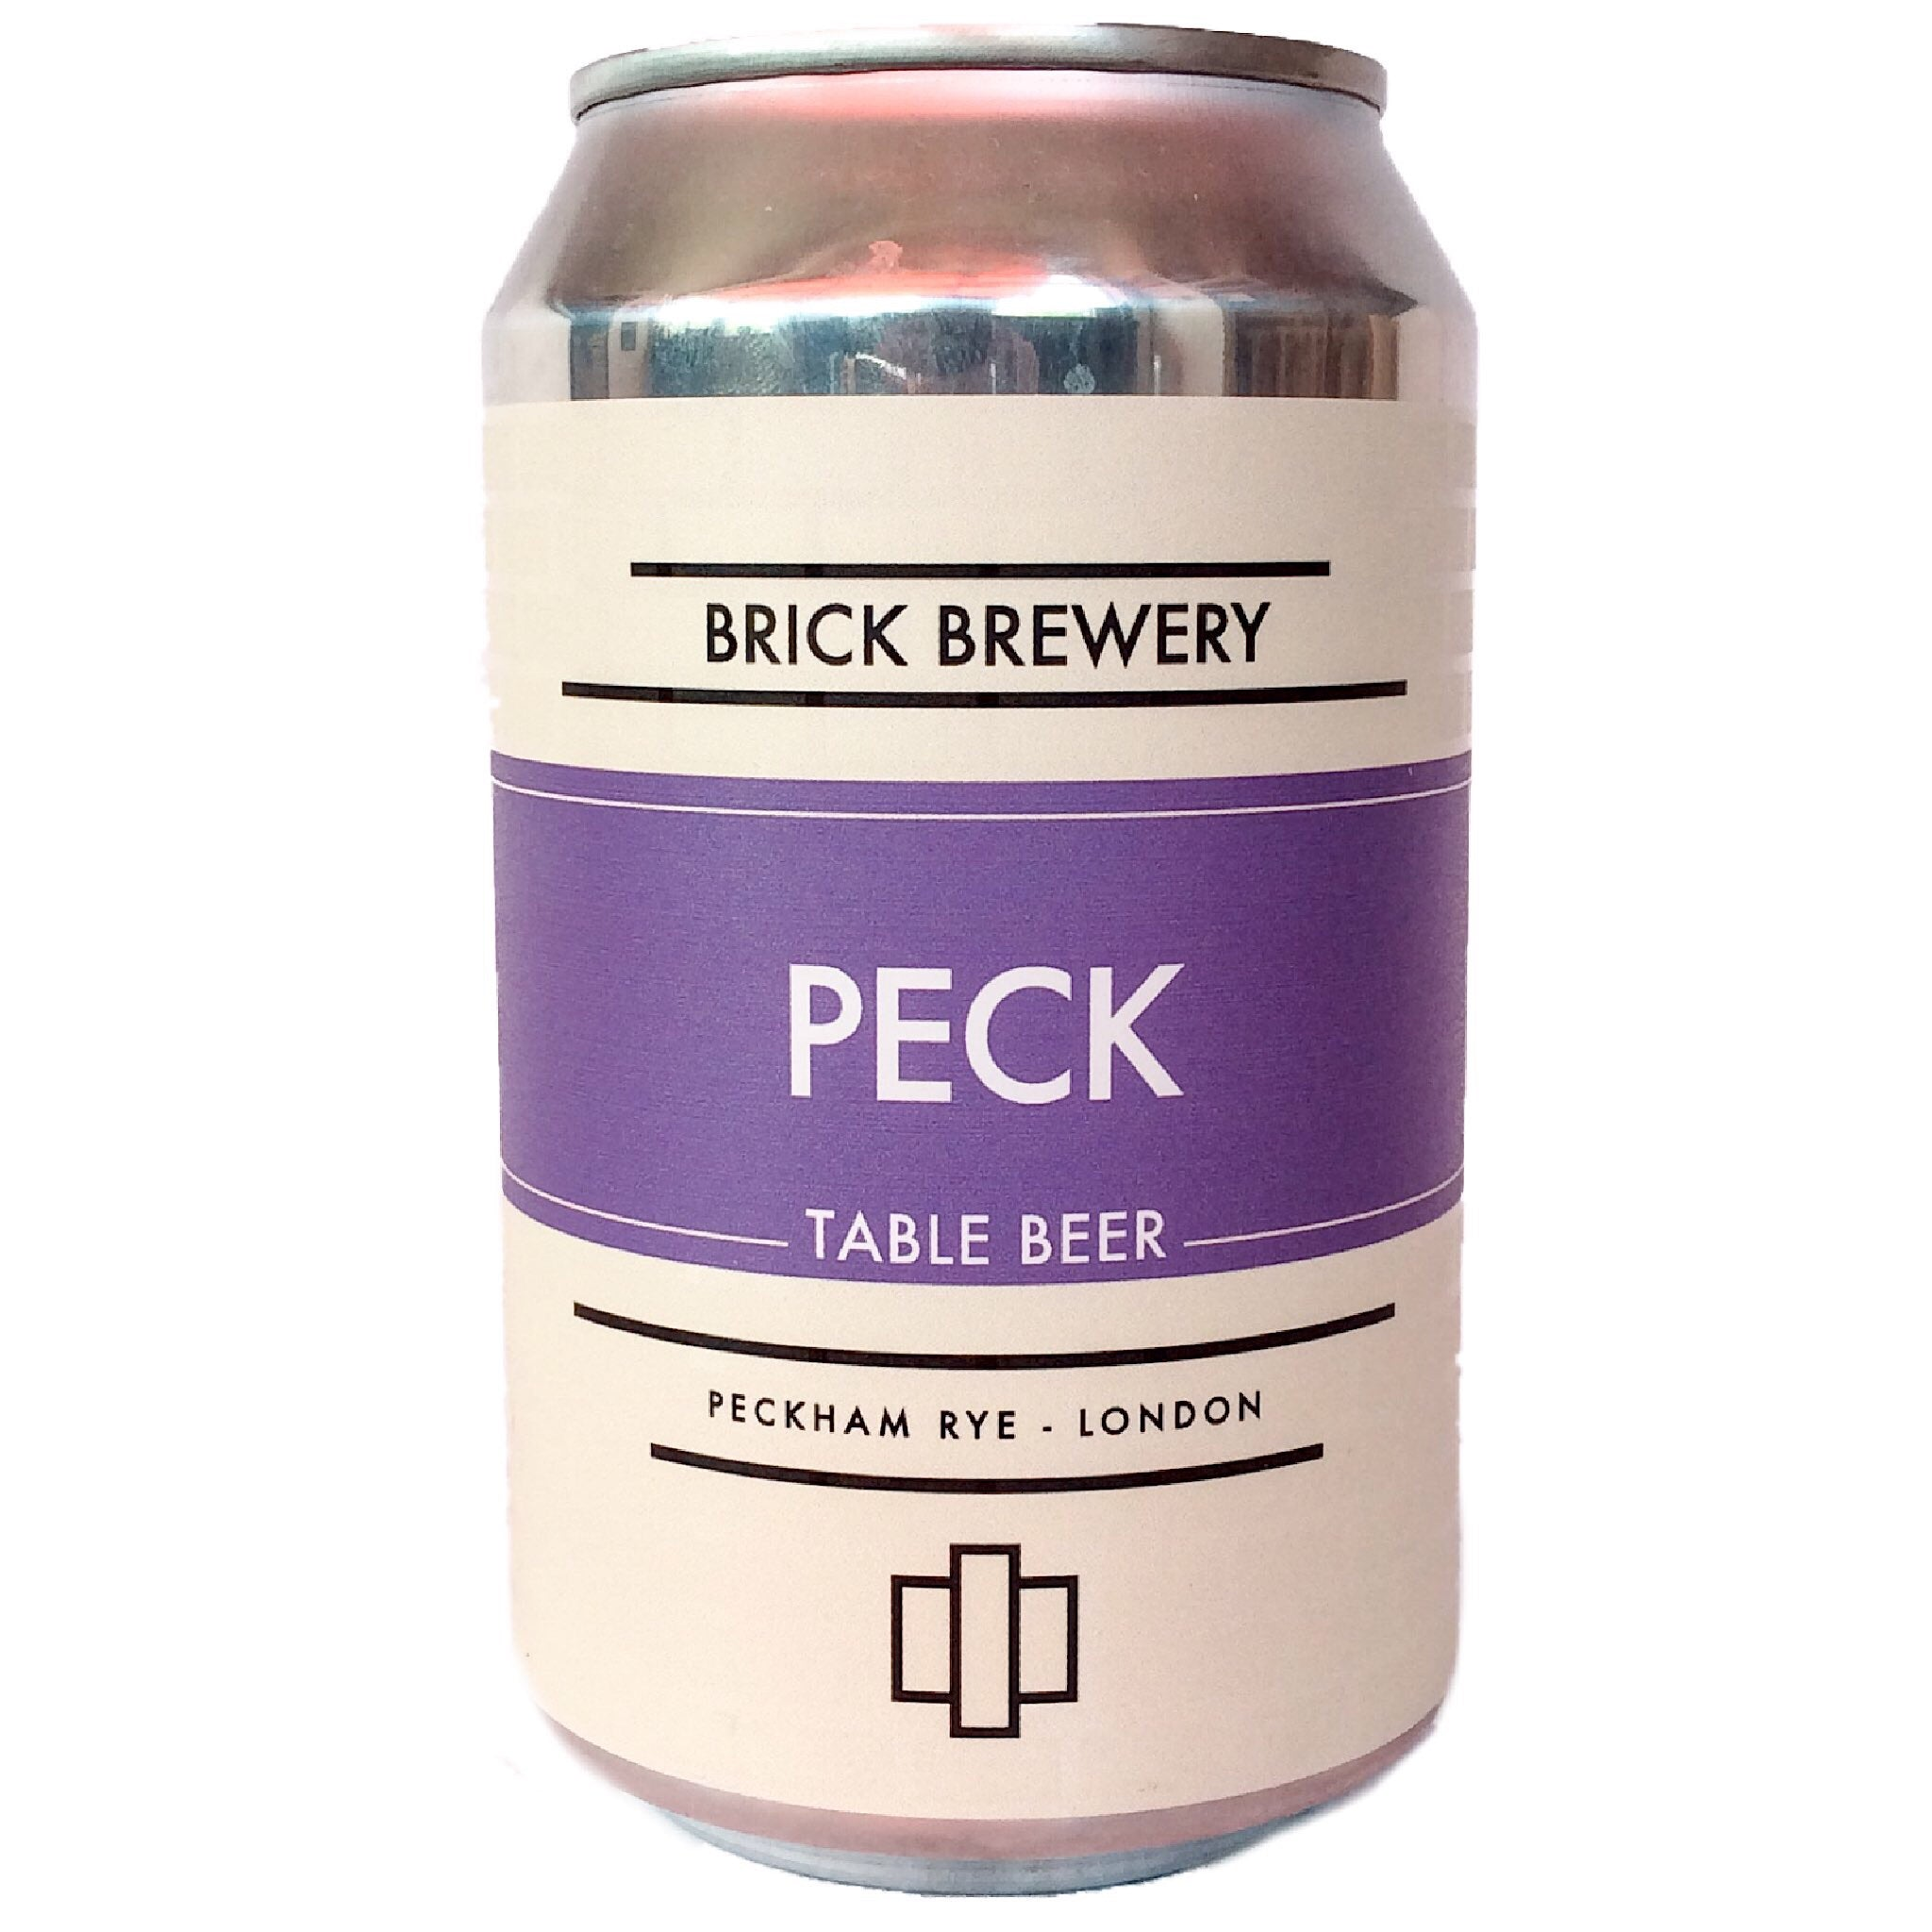 Brick Brewery Peck Table Beer 3% (330ml can)-Hop Burns & Black